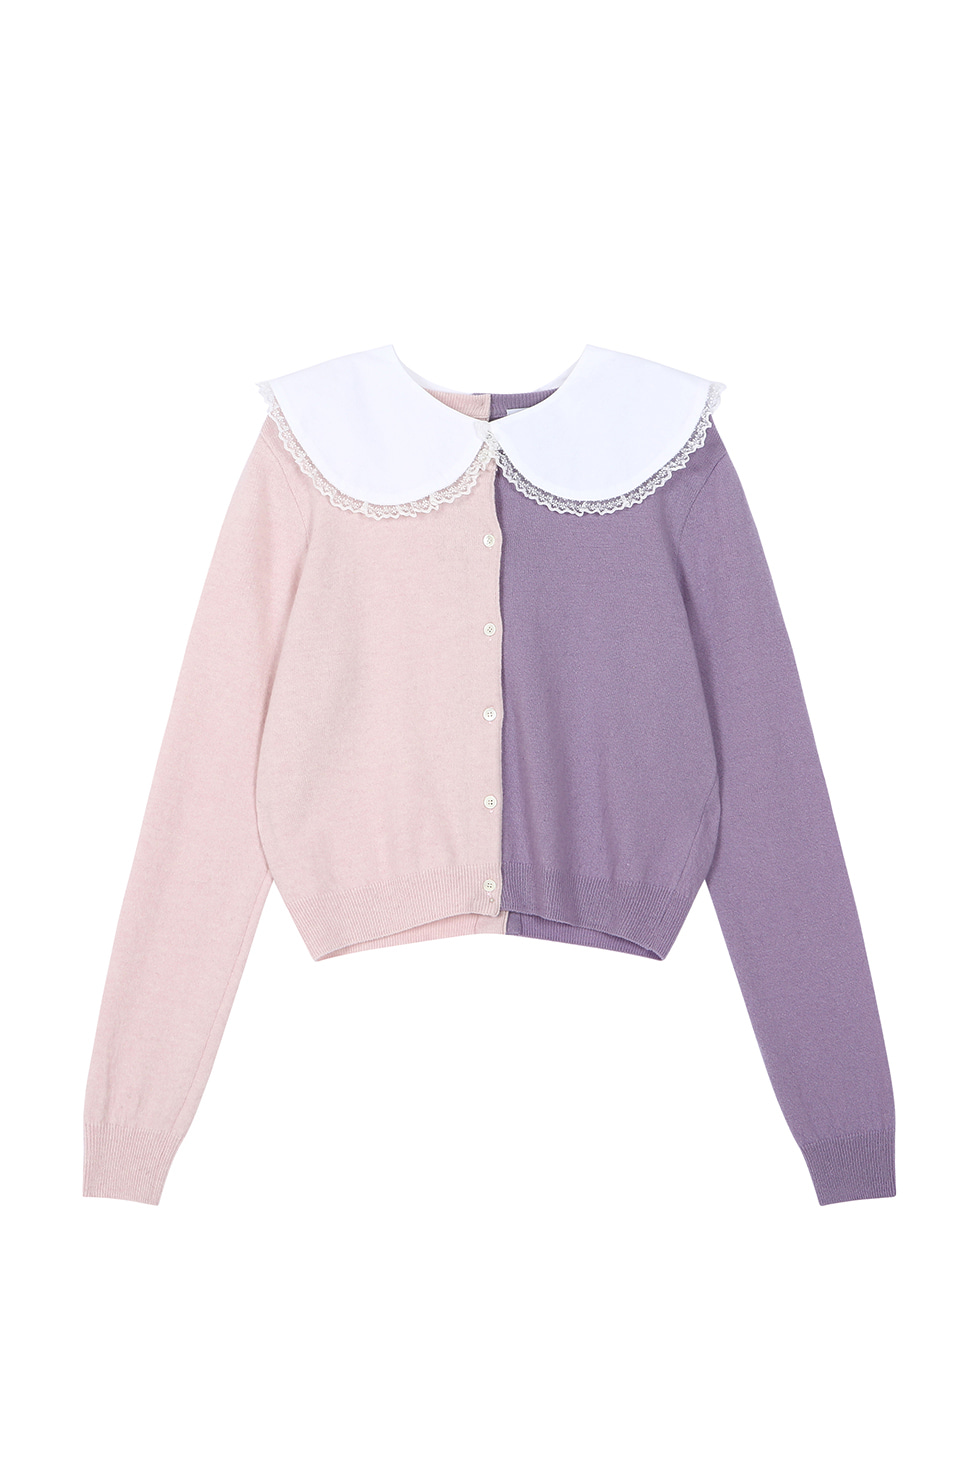 COTTON COLLAR CARDIGAN - PINK